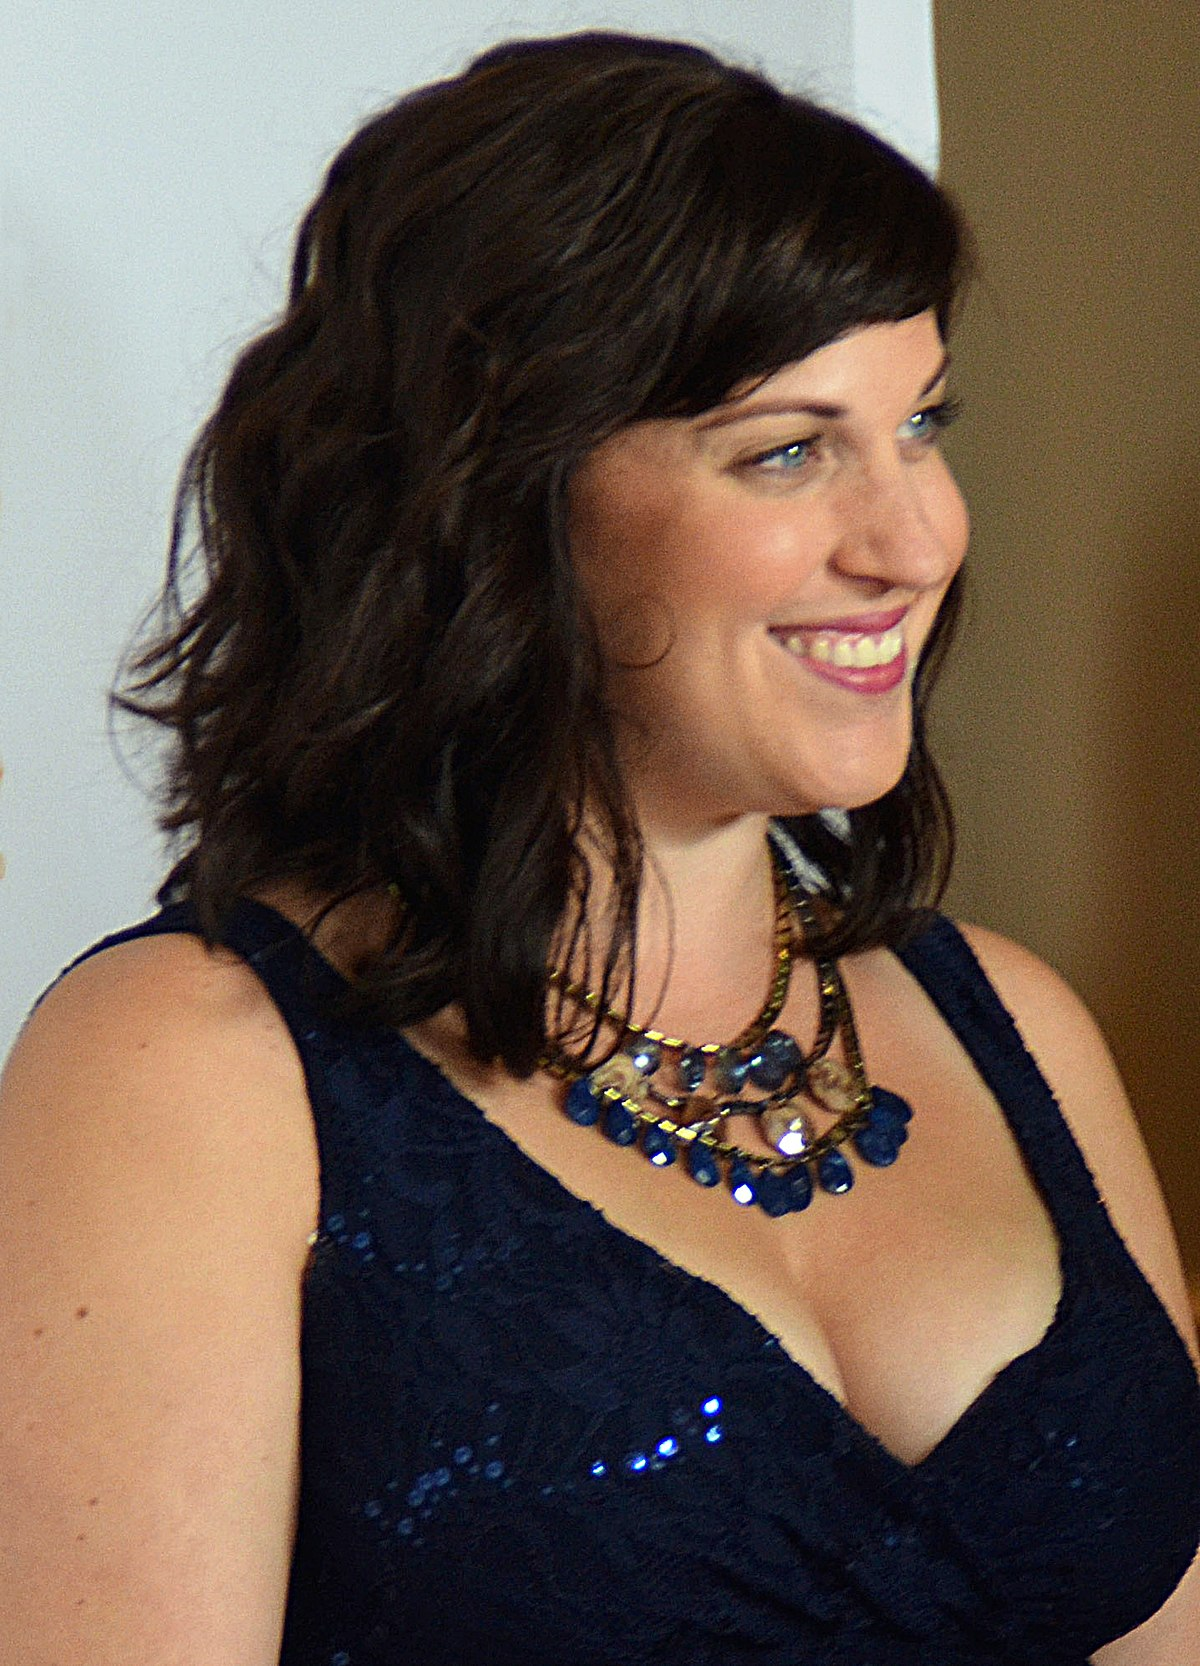 Allison Tolman Nude Photos 25